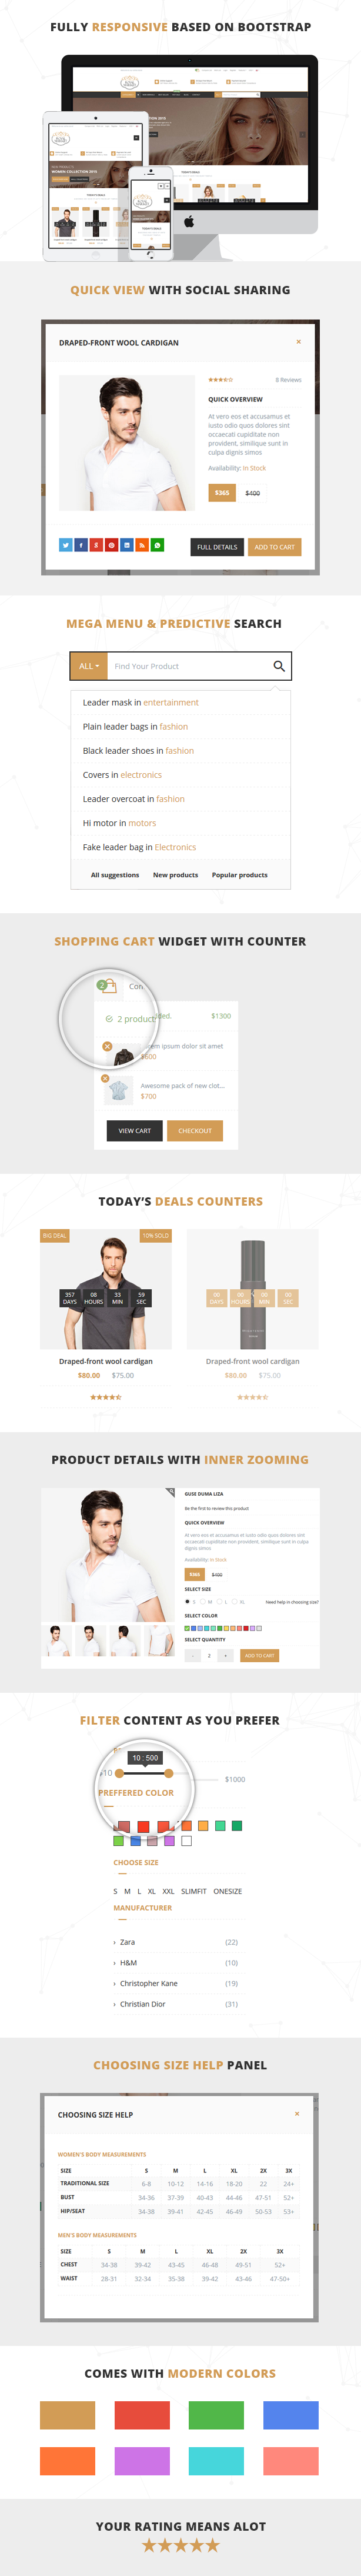 Royal Market - Responsive HTML5 Shopping Template